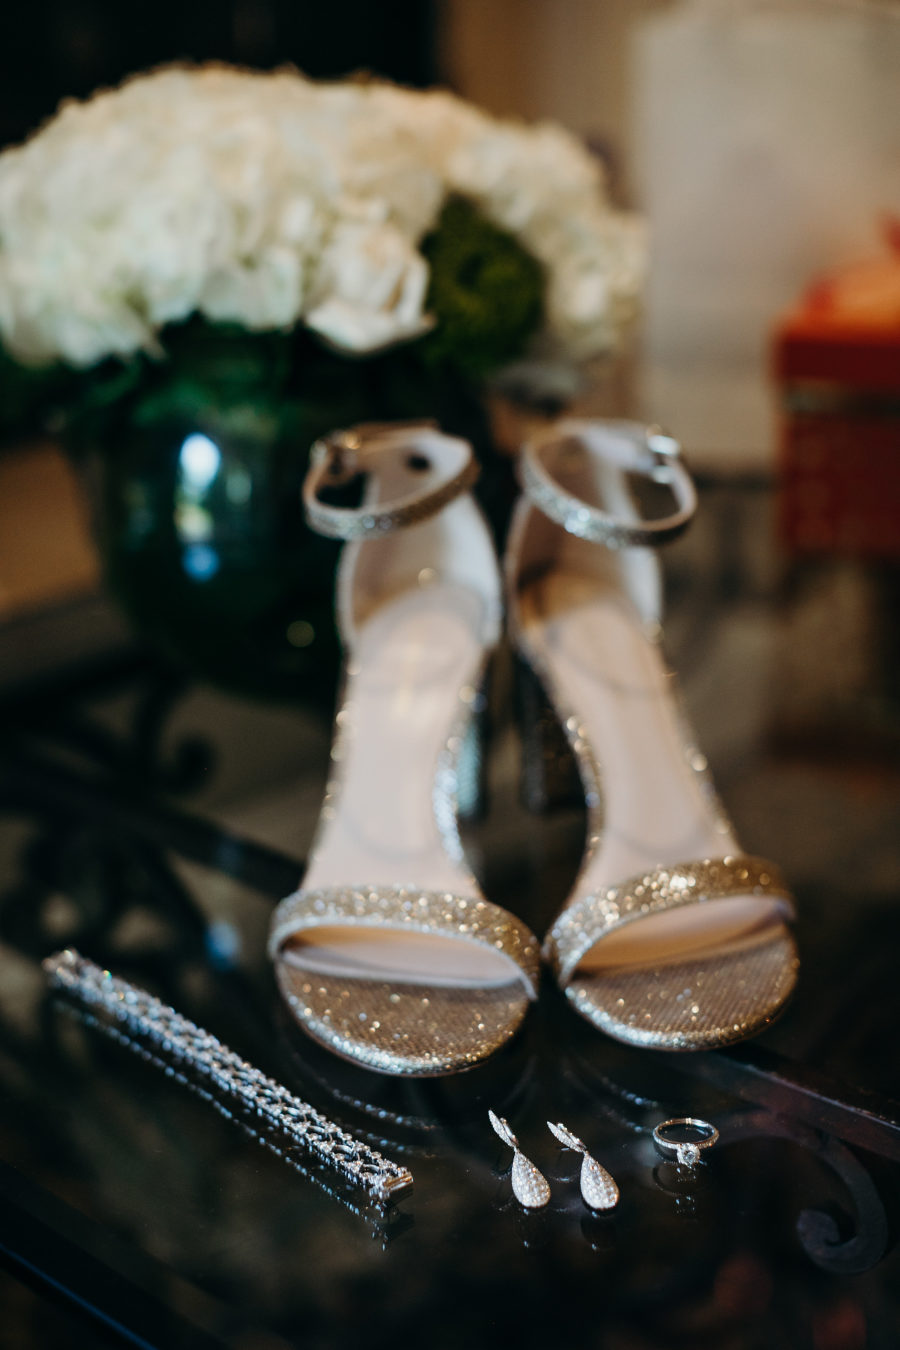 Look at these glam sparkly shoes and statement earrings, aren't they amazing